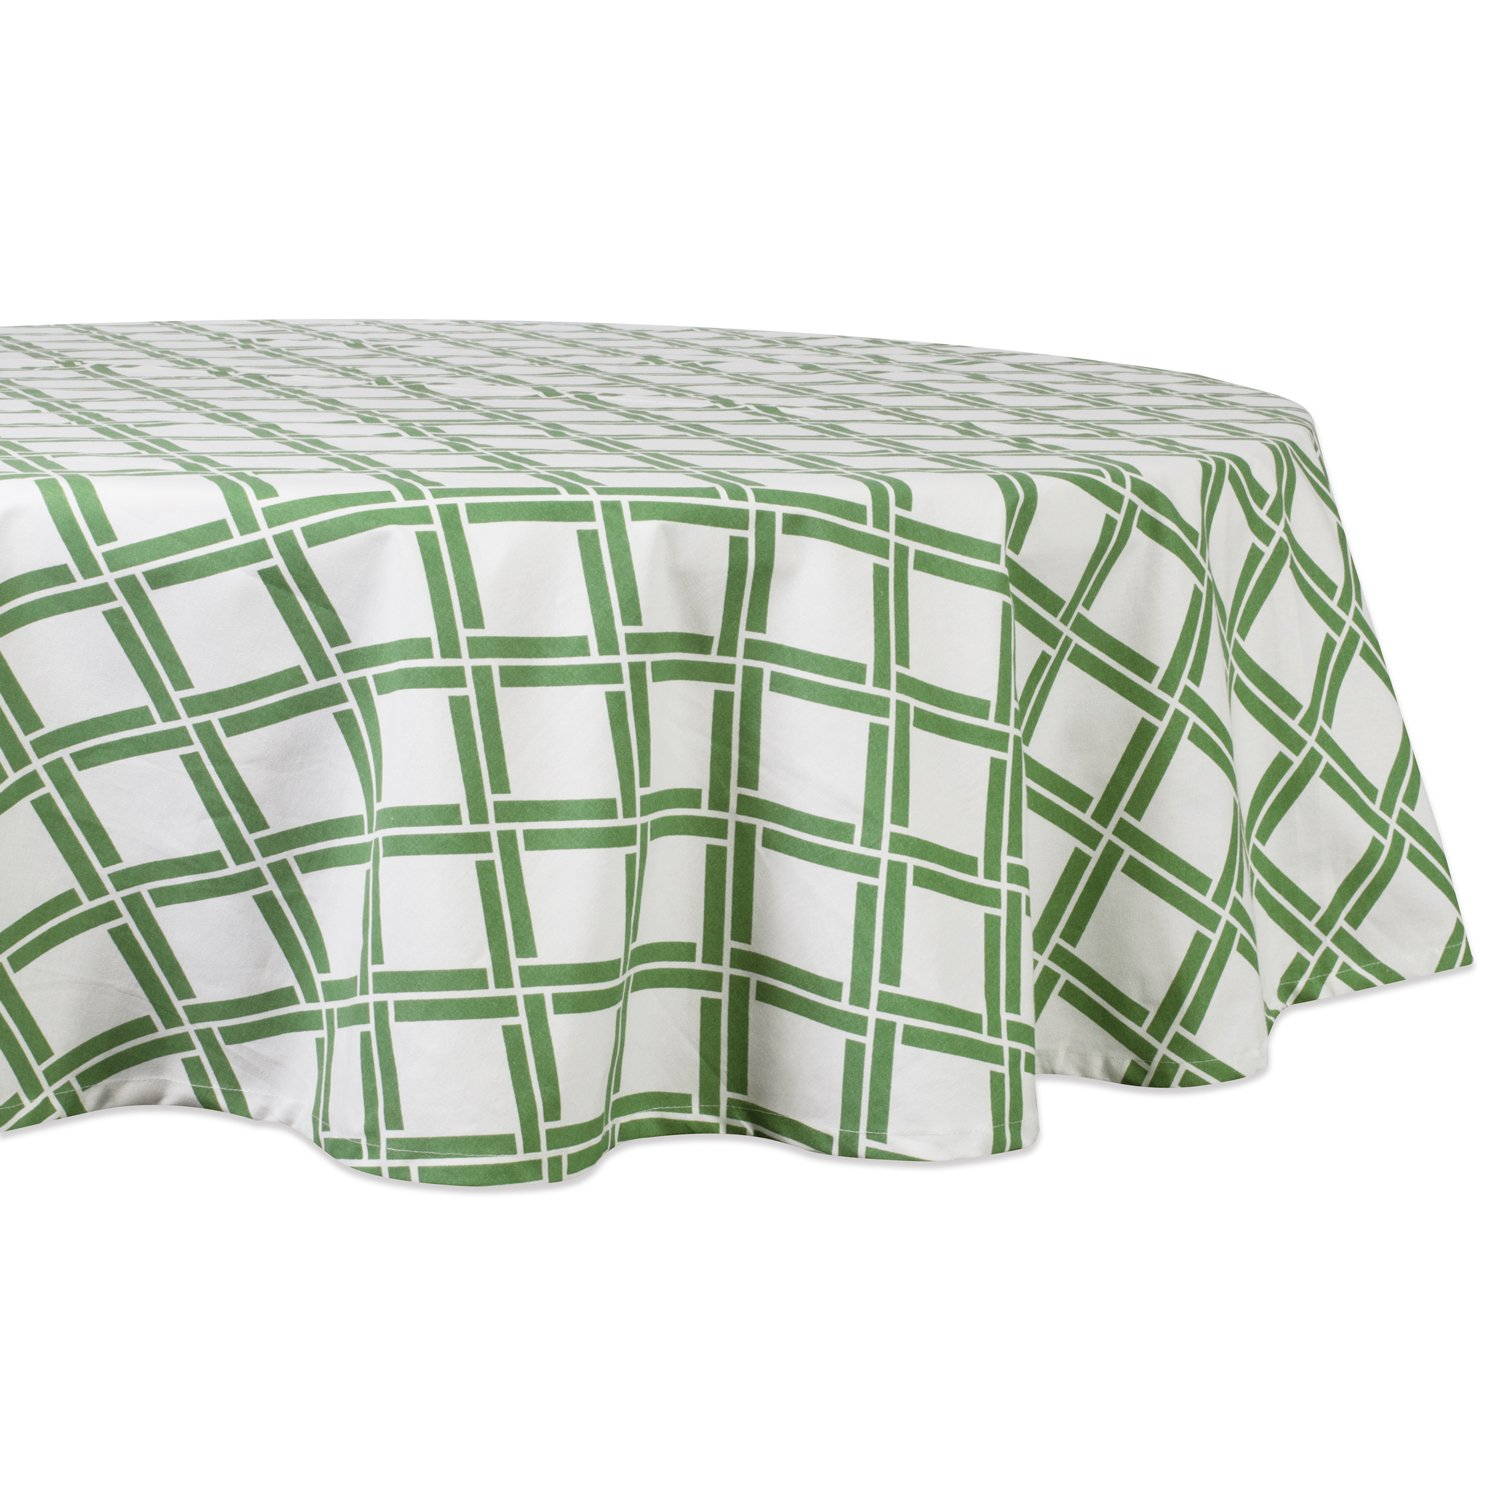 DII CAMZ37390 100% Cotton, Machine Washable, Printed Kitchen Tablecloth for Dinner Parties, Summer & Outdoor Picnics-70 Round, Seats 4-6 People, 14x72 Bamboo Lattice